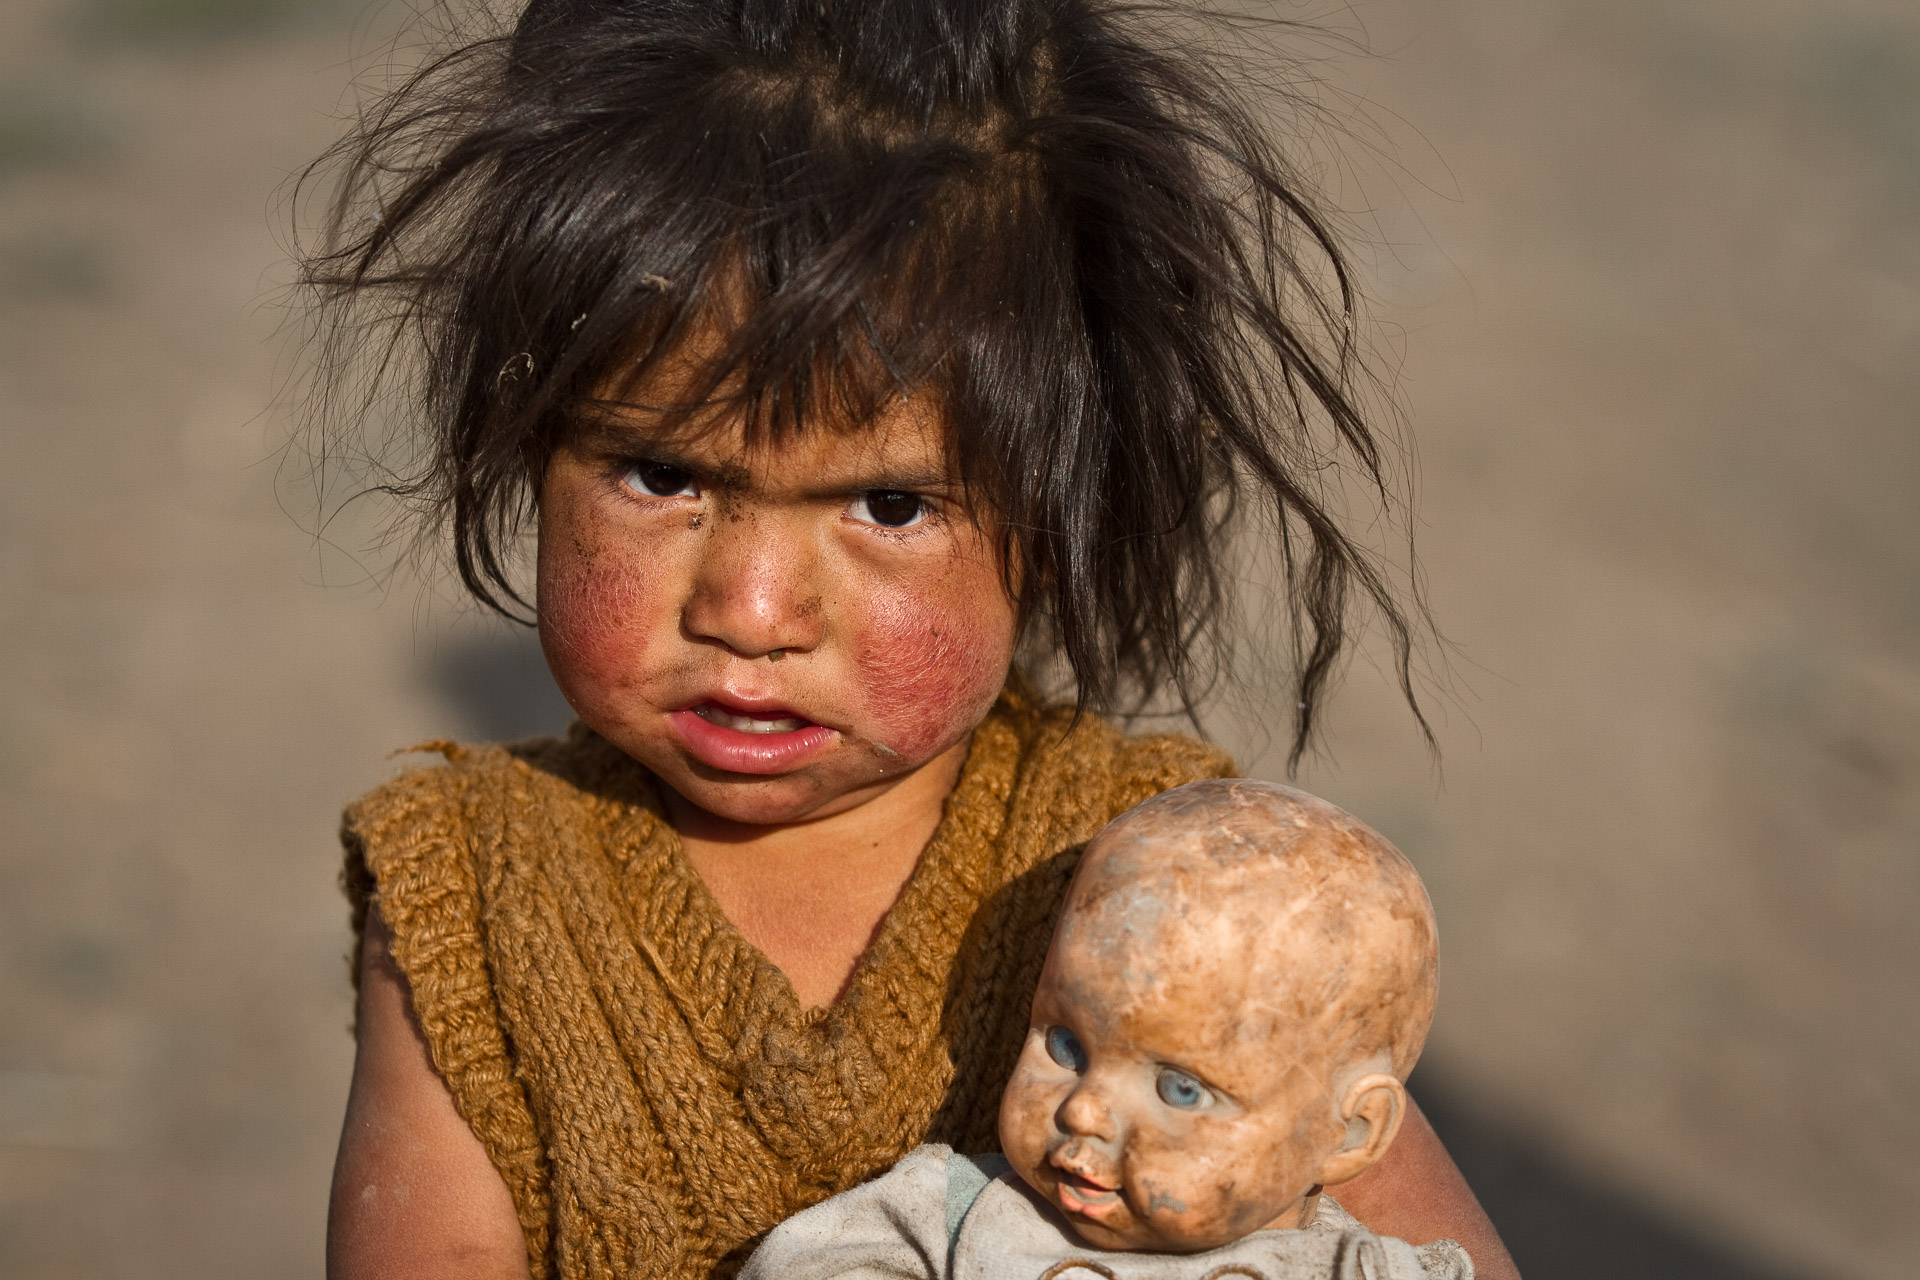 girl from Peru with a doll between the arms-size 1920x1280